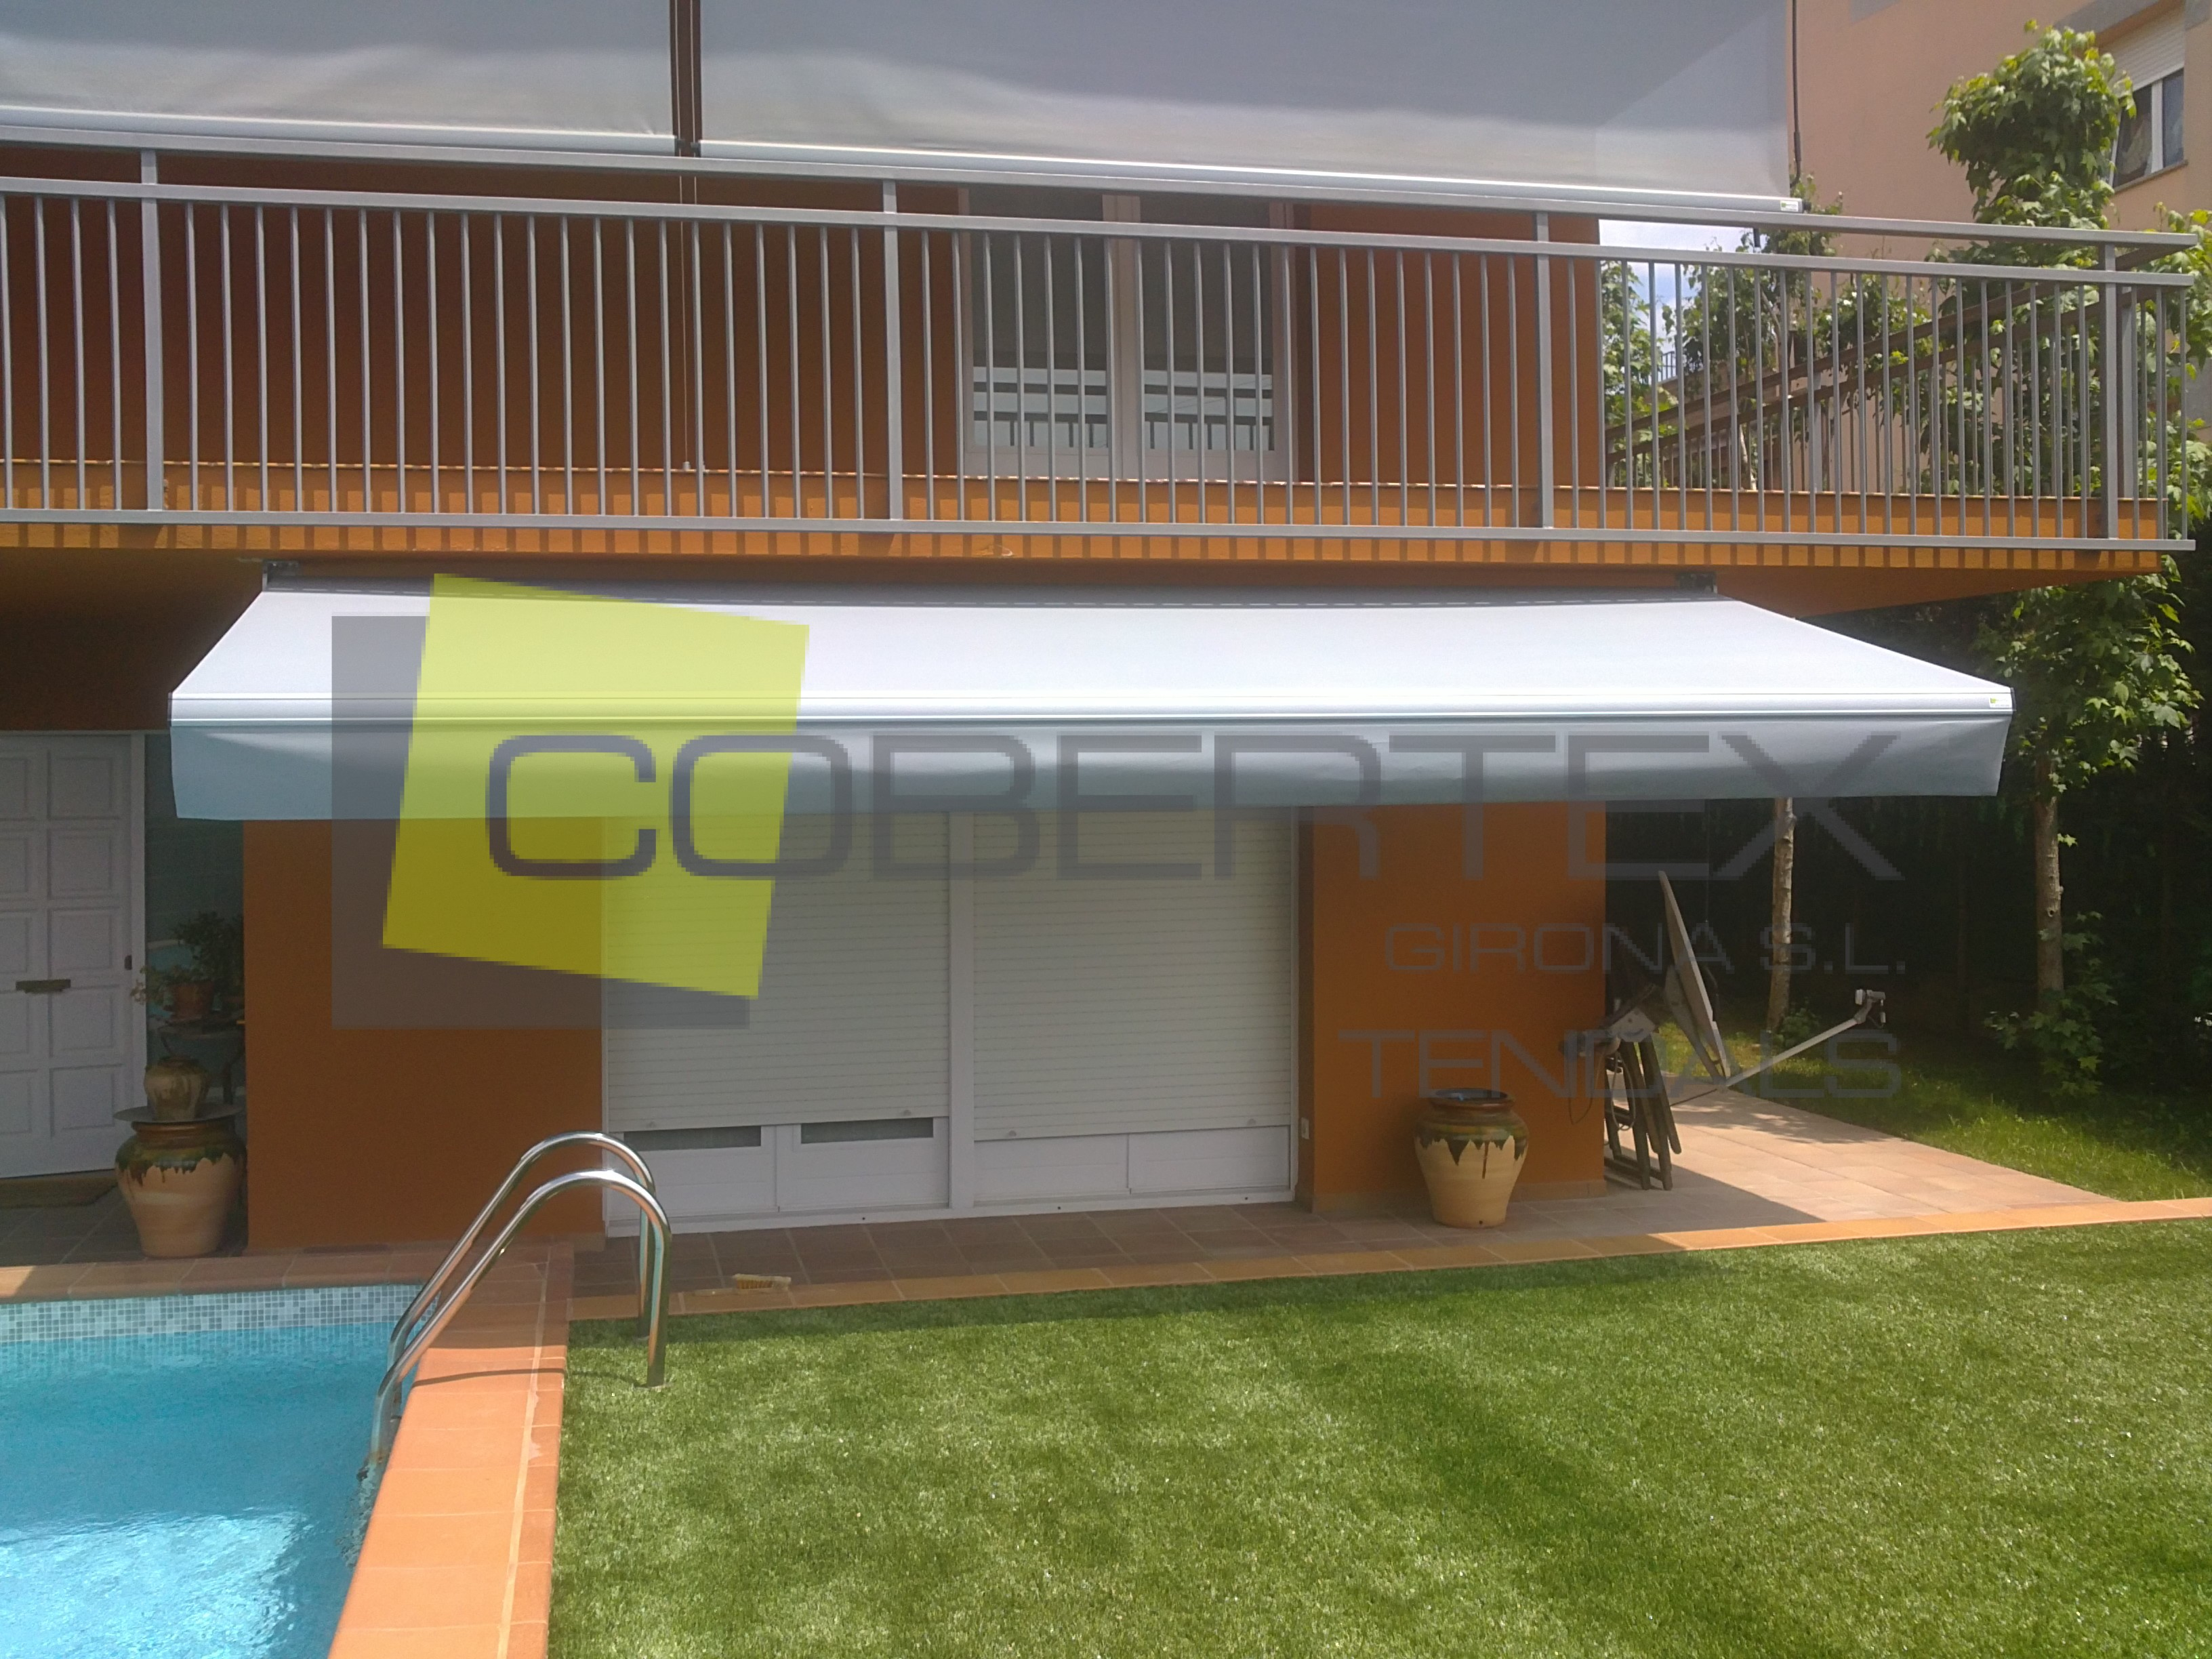 Toldo brazos invisibles particular cobertex for Brazos invisibles para toldos